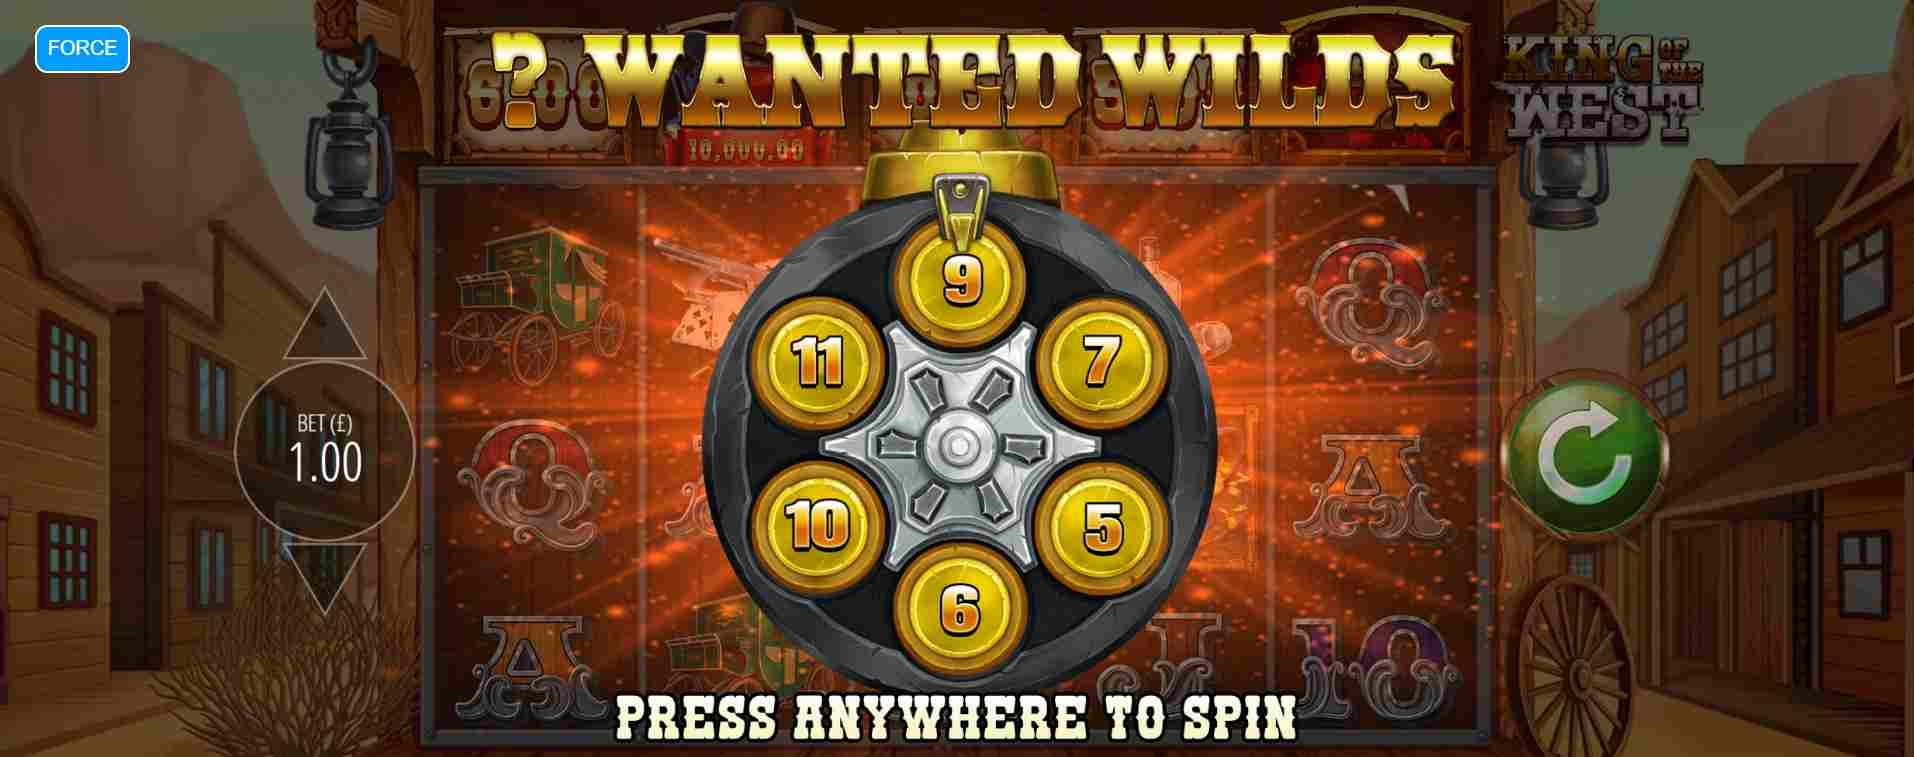 King of the West Slot Wanted Wilds